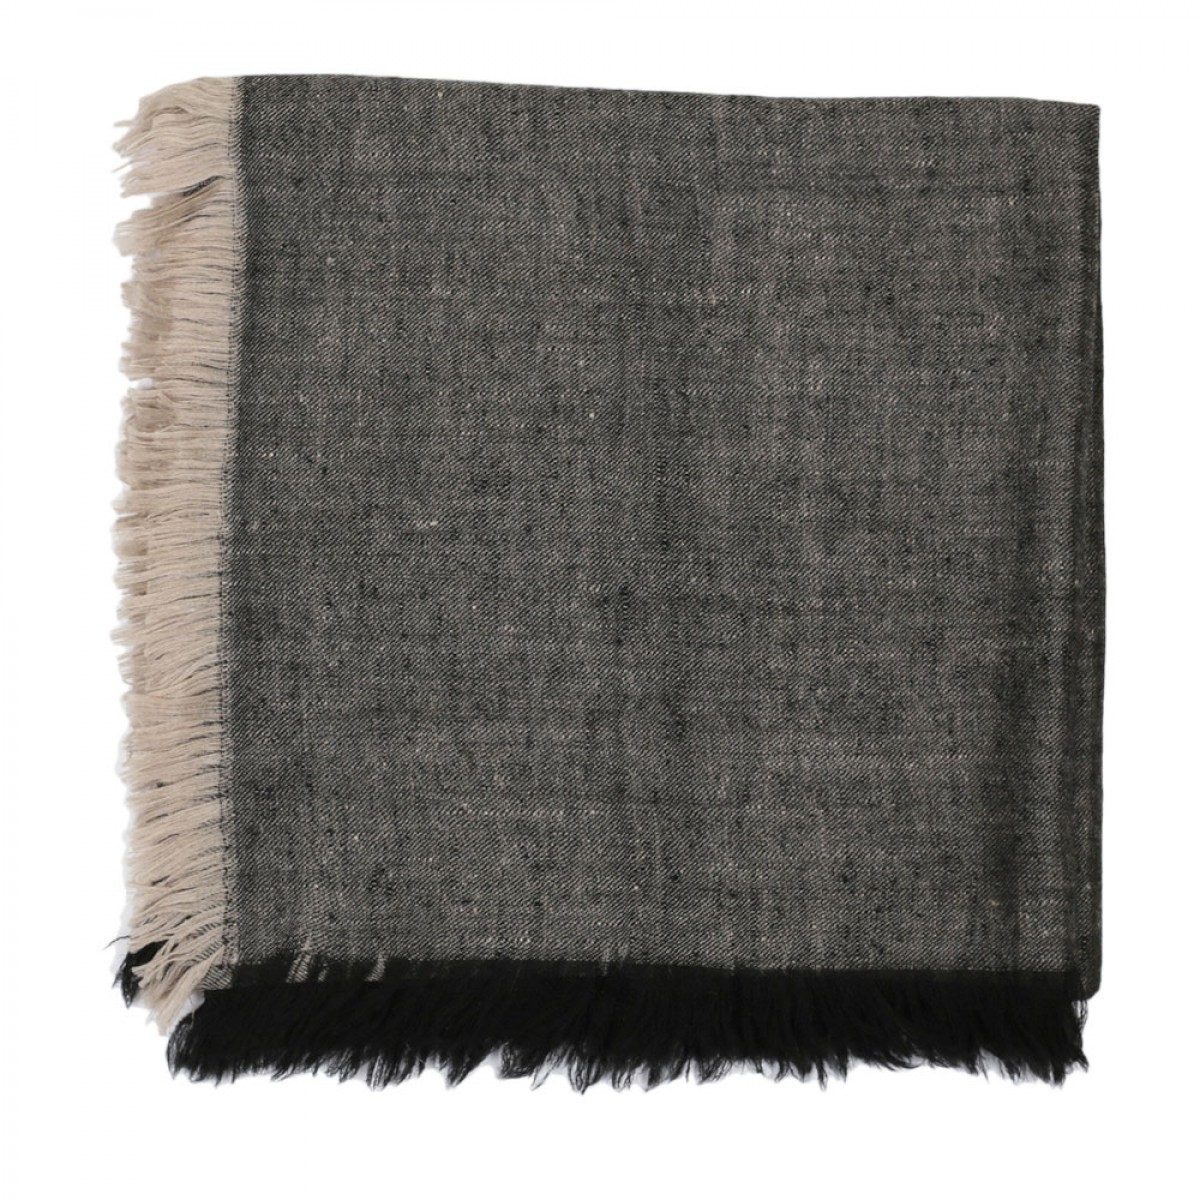 Plain Square Reversible Pashmina Scarf - Black